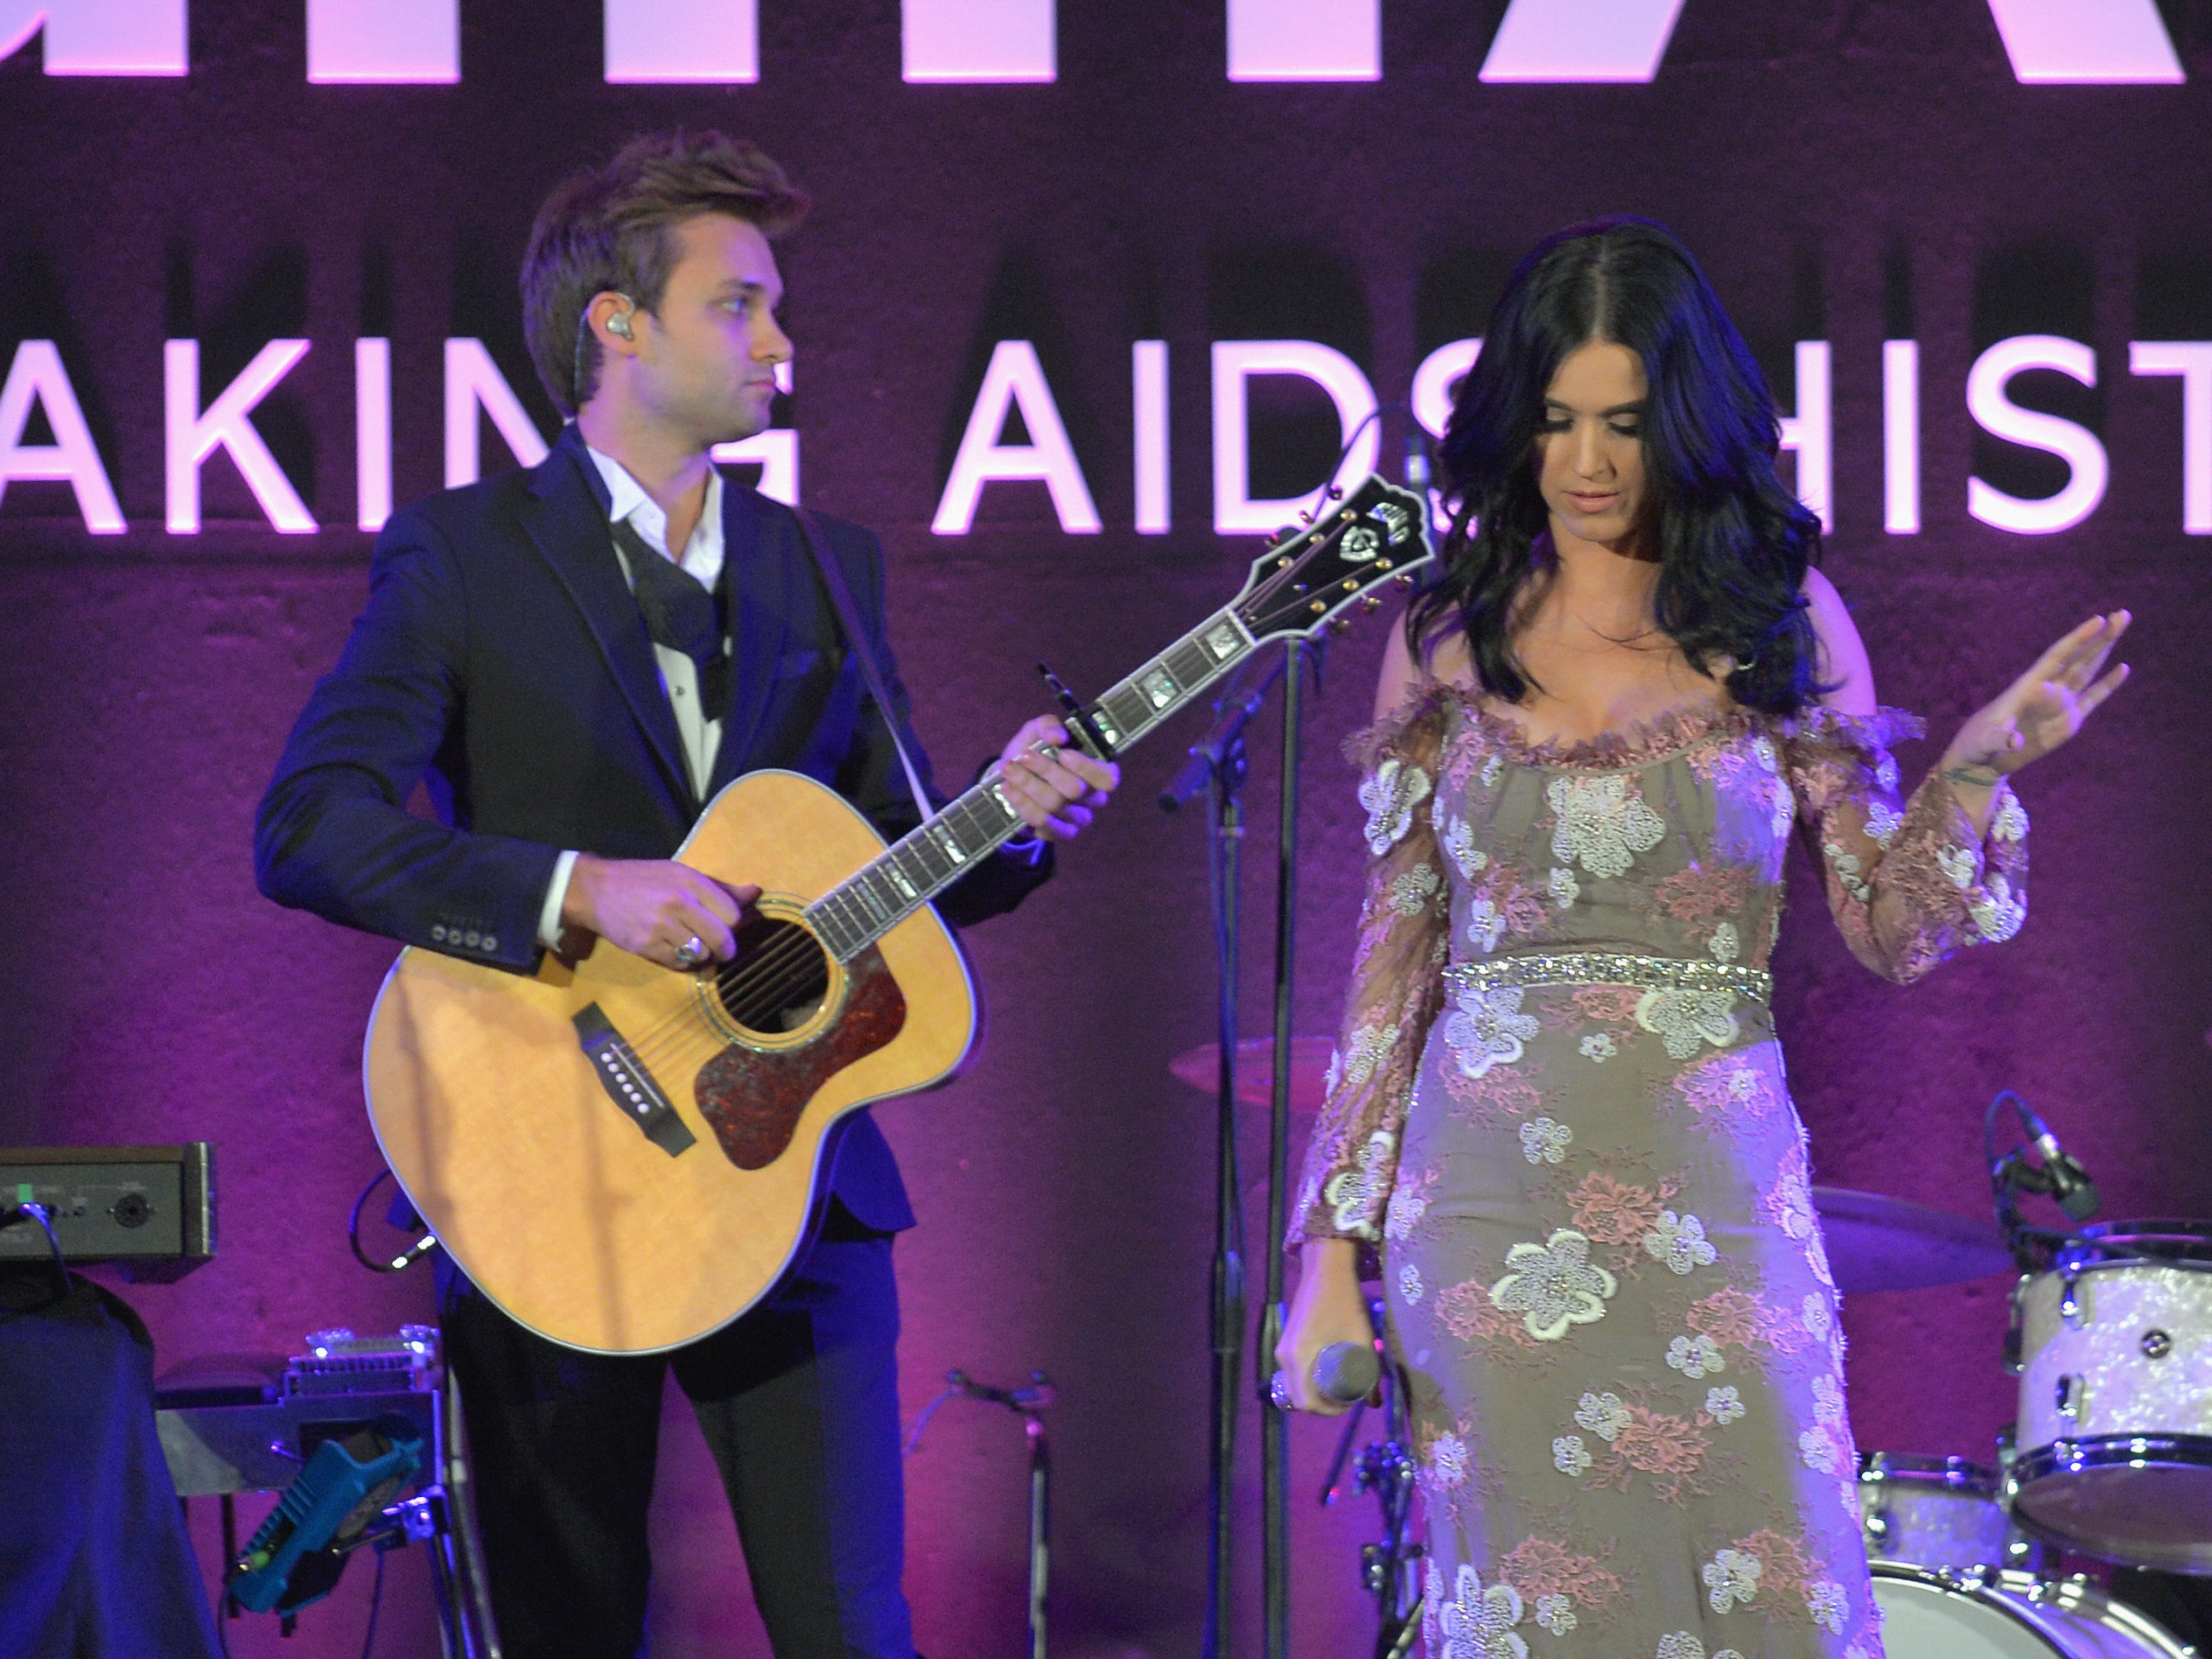 Katy Perry chose a floral dress to perform at the amfAR Inspiration Gala in LA.